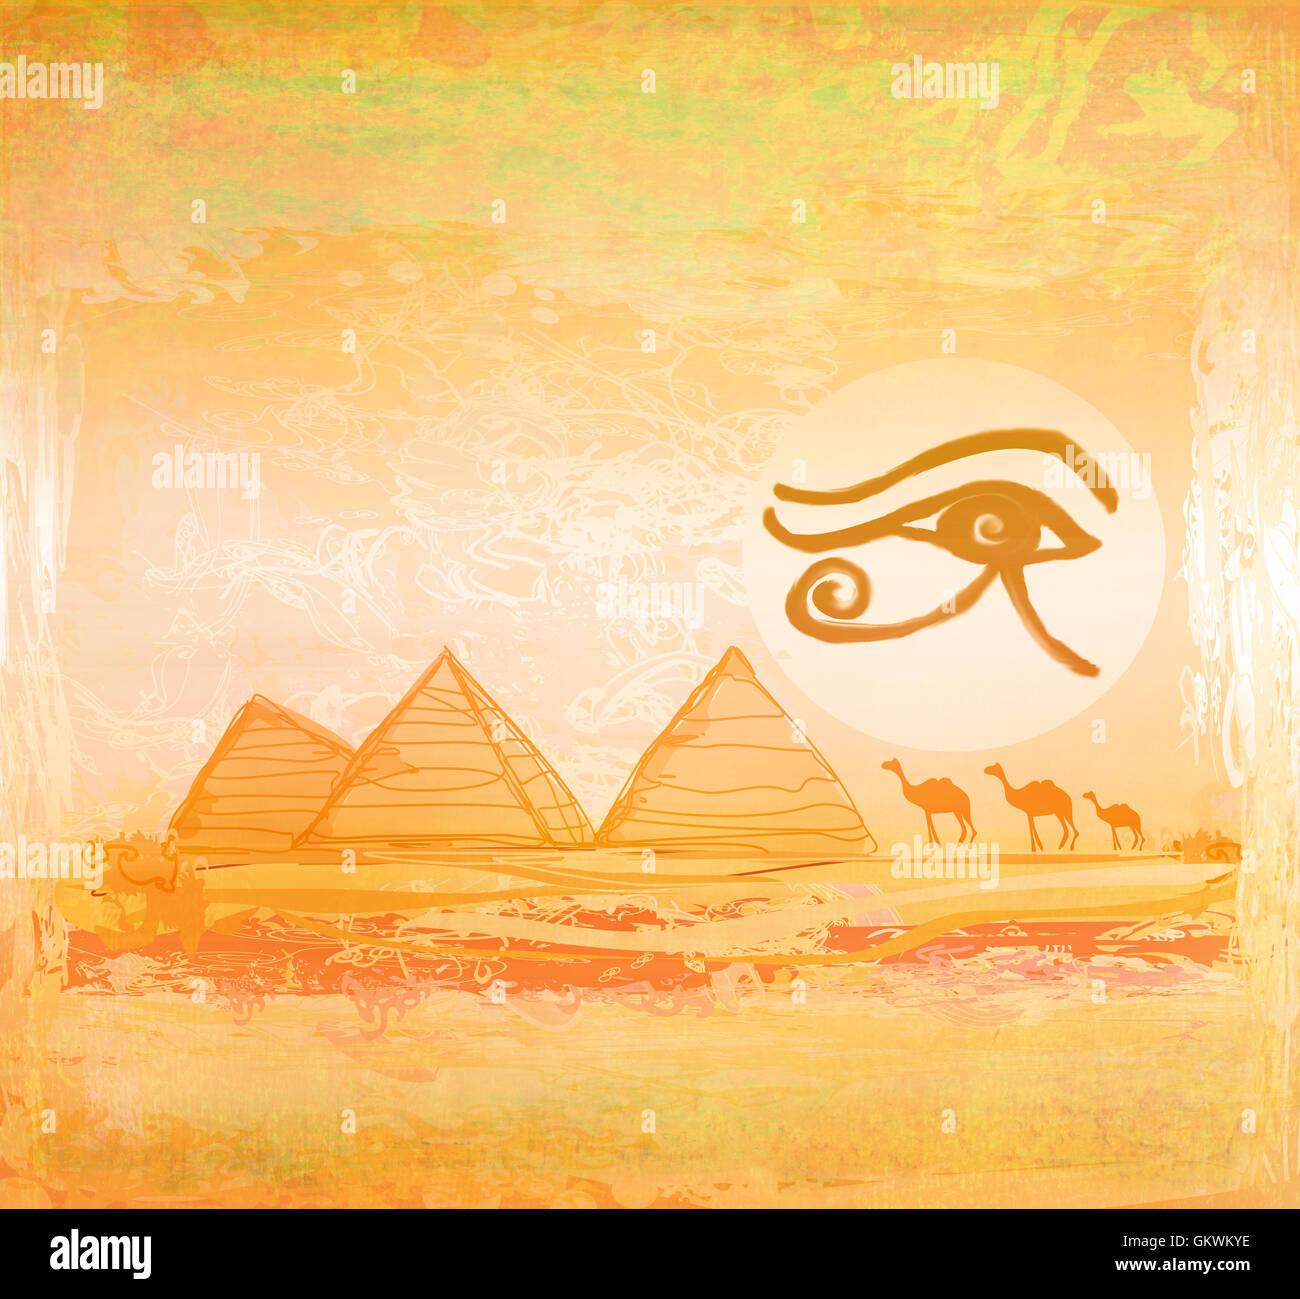 Egypt symbols and pyramids traditional horus eye symbol and ca egypt symbols and pyramids traditional horus eye symbol and ca biocorpaavc